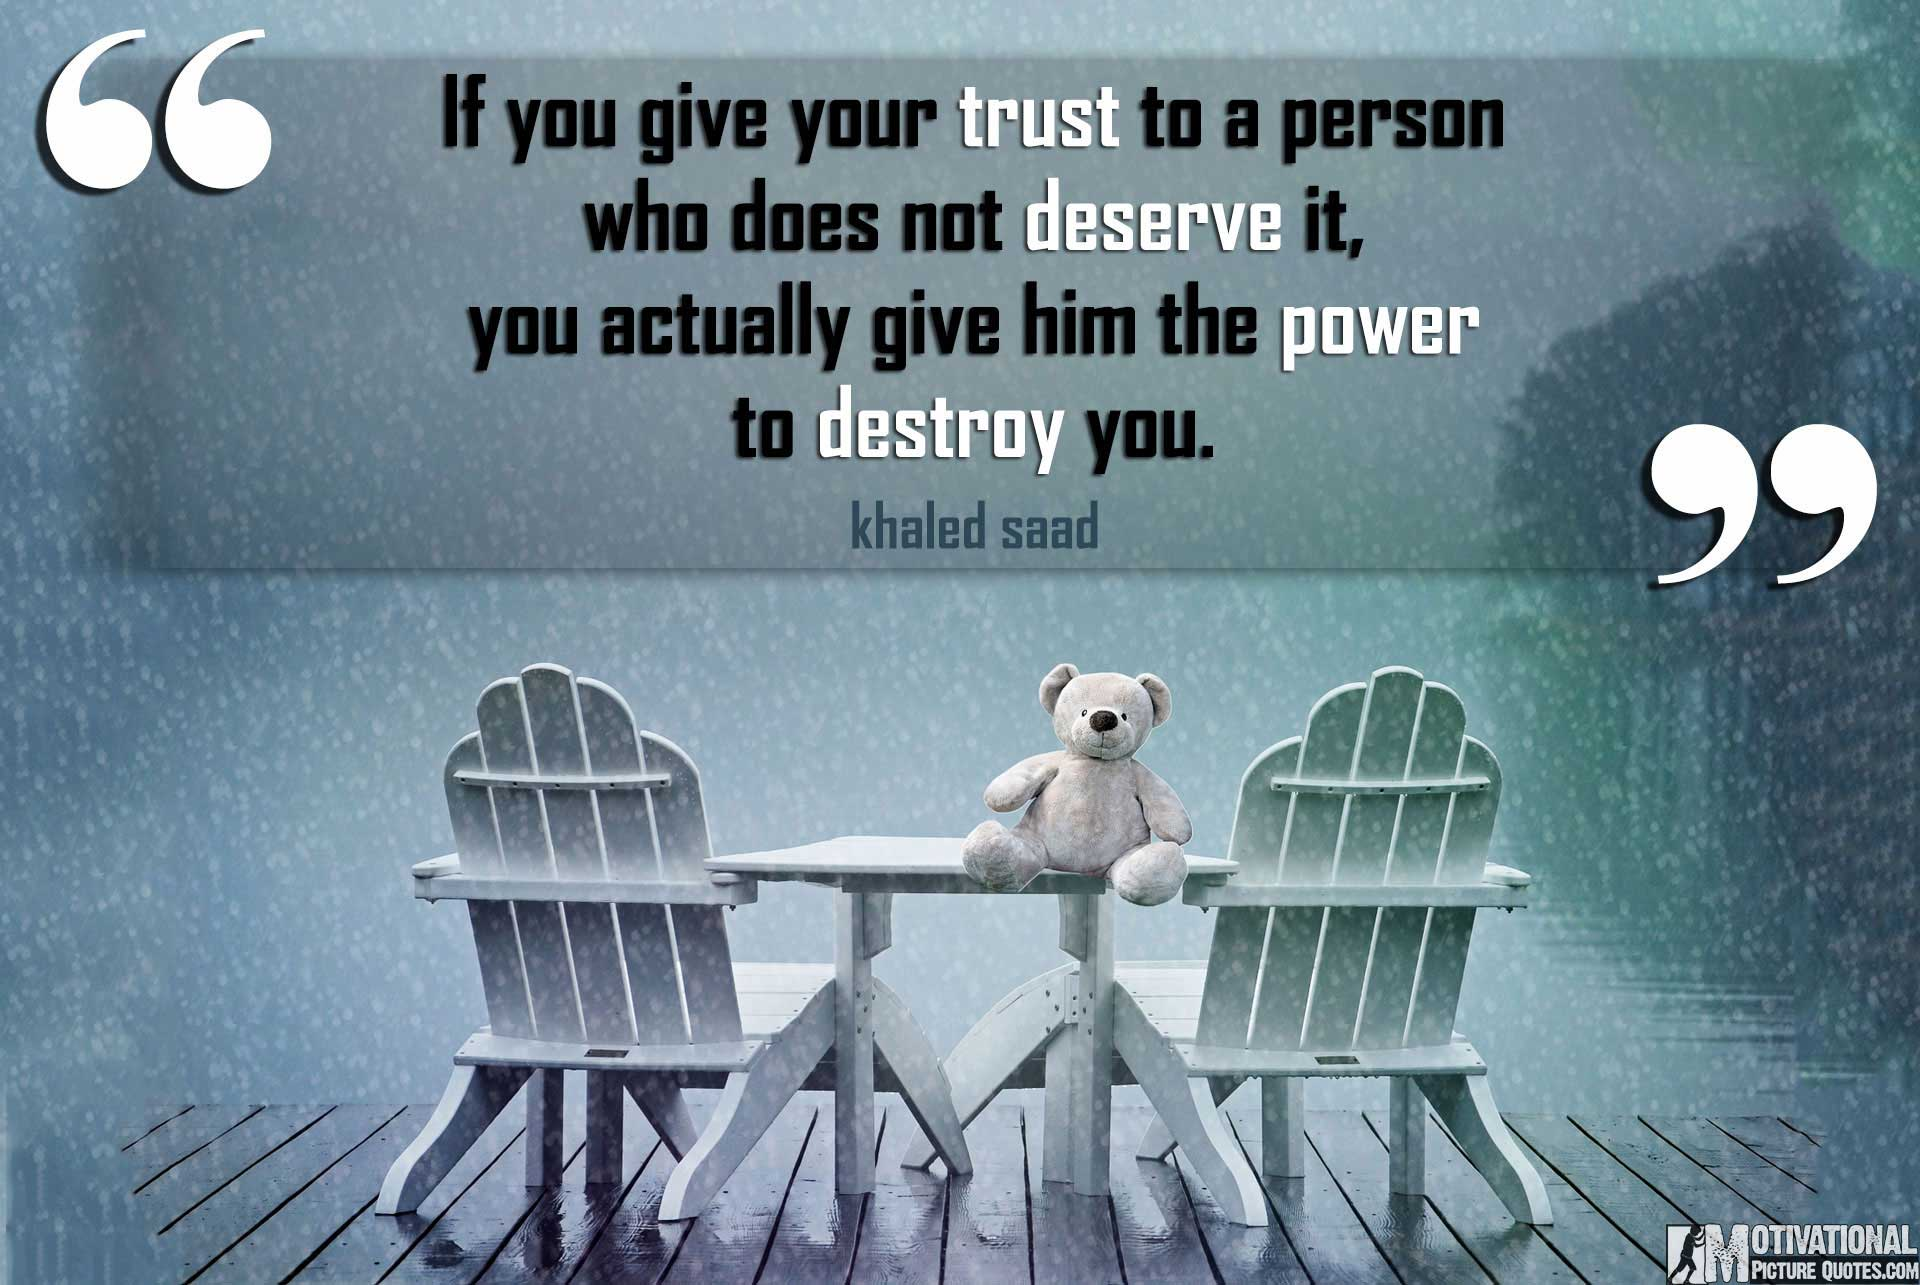 45 Inspirational Trust Quotes With Images Insbright